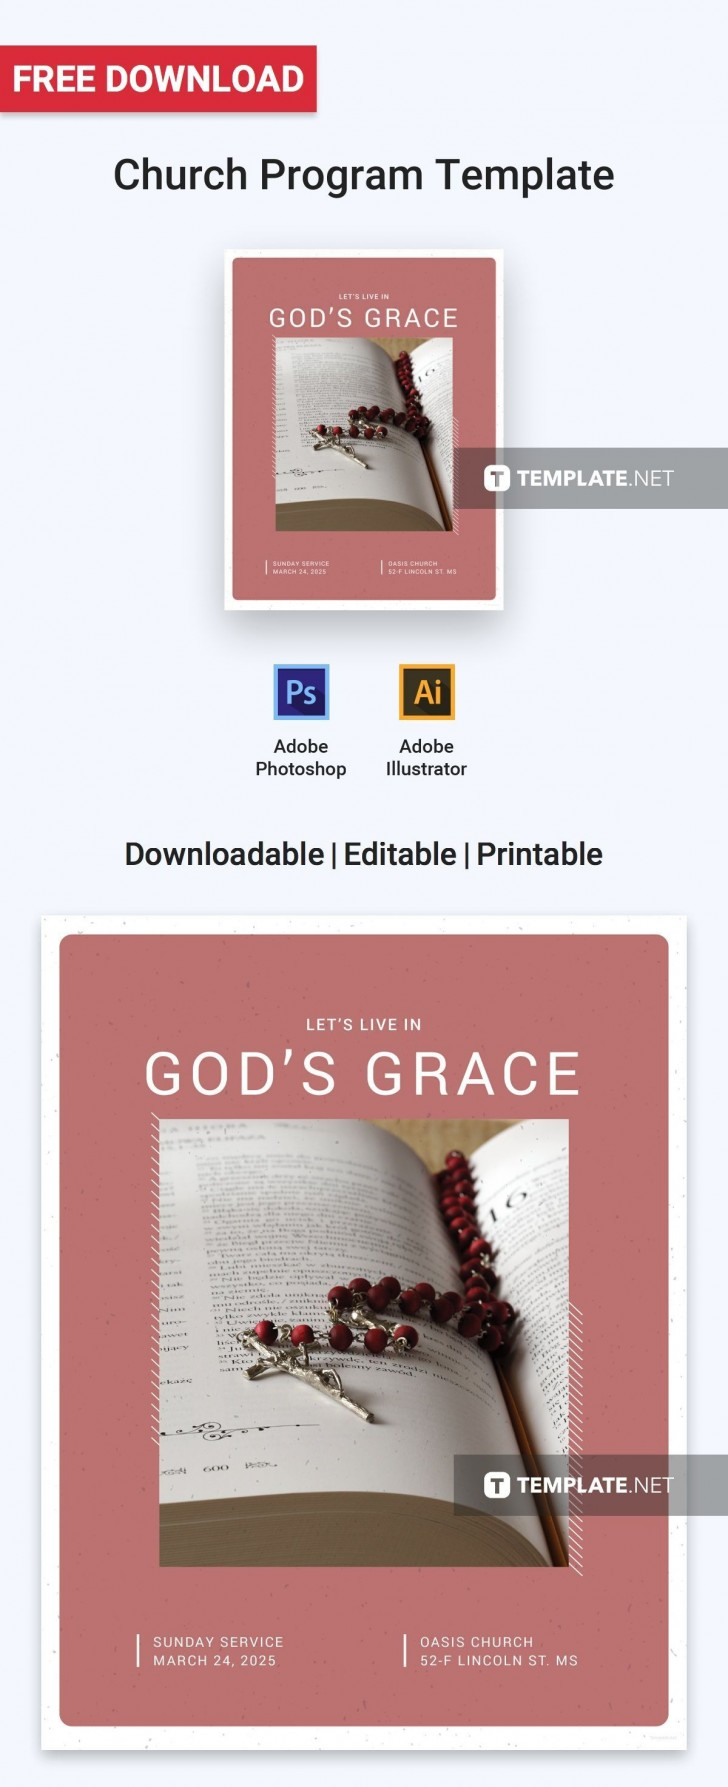 000 Unforgettable Free Church Program Template Design Image 728